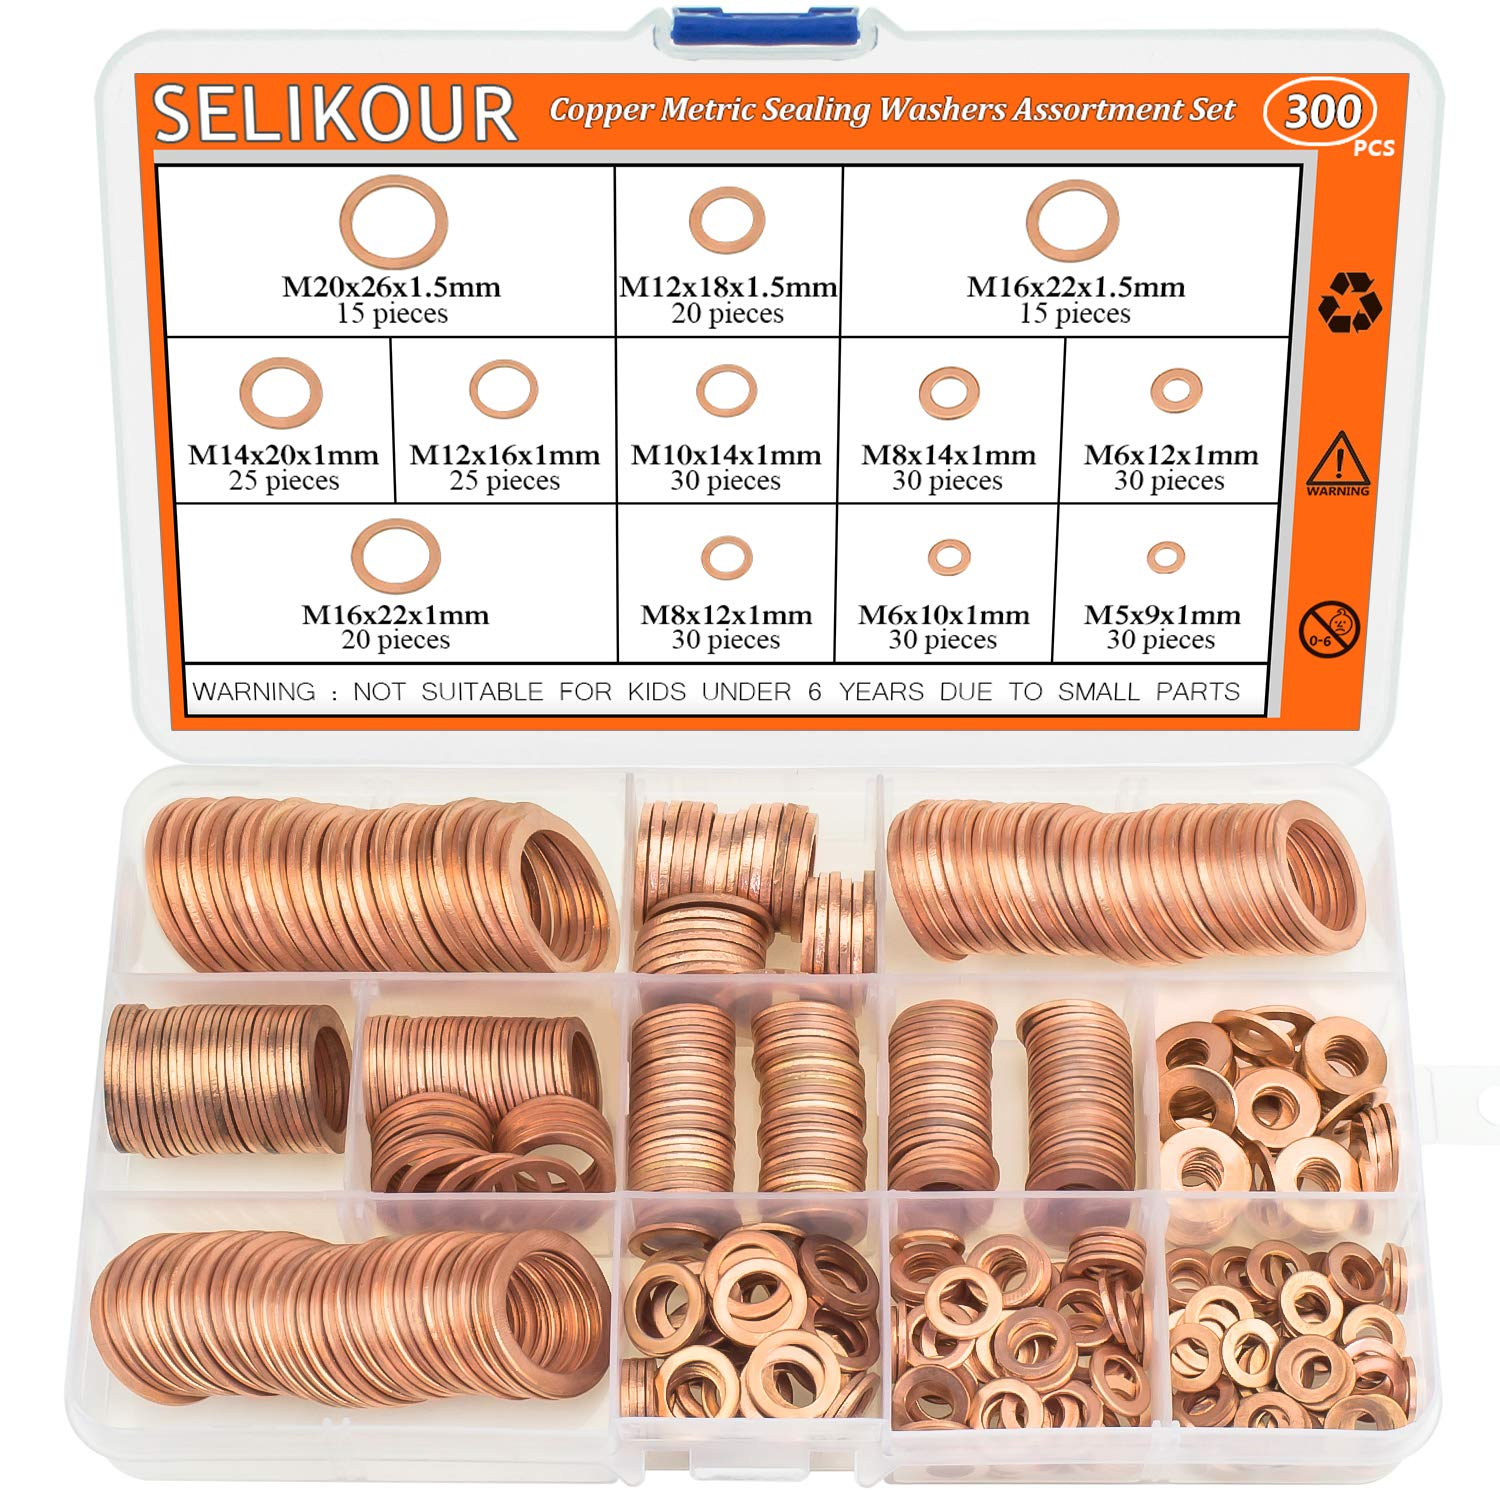 Copper Washer Assortment Set, HELIFOUNER 300Pcs 12Sizes Copper Metric Sealing Washers Kit